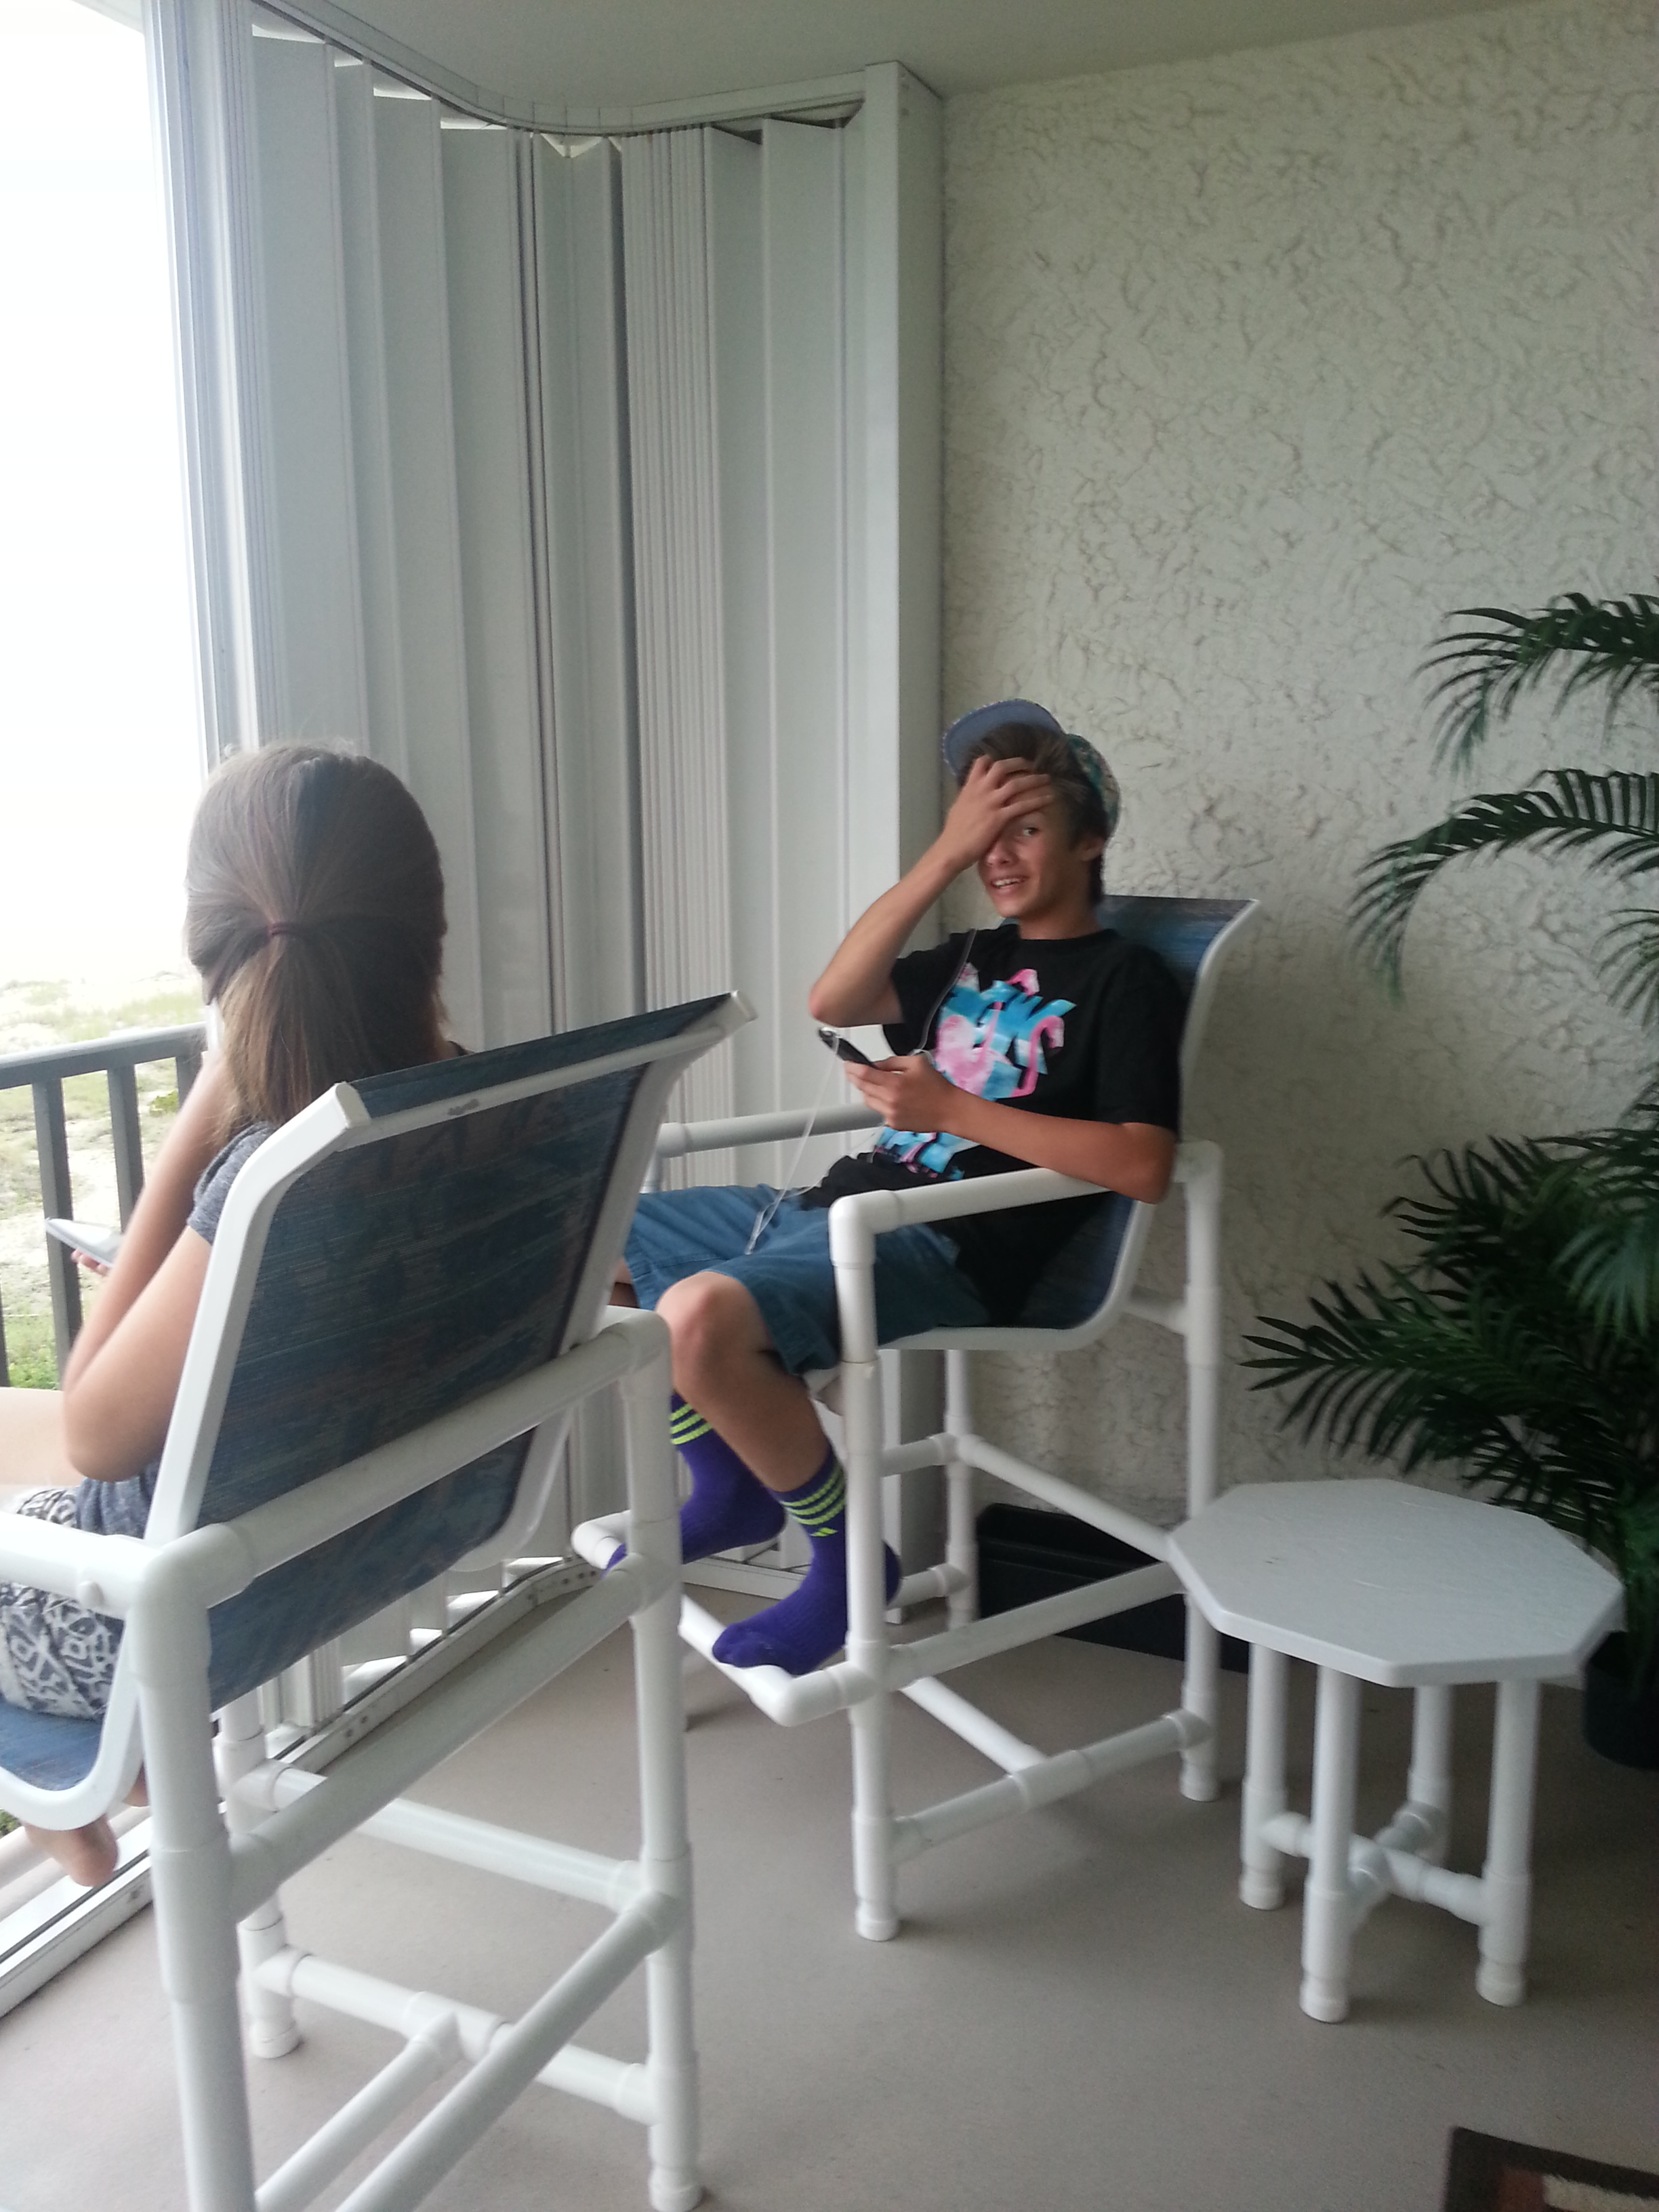 Kids chilling on the balcony!